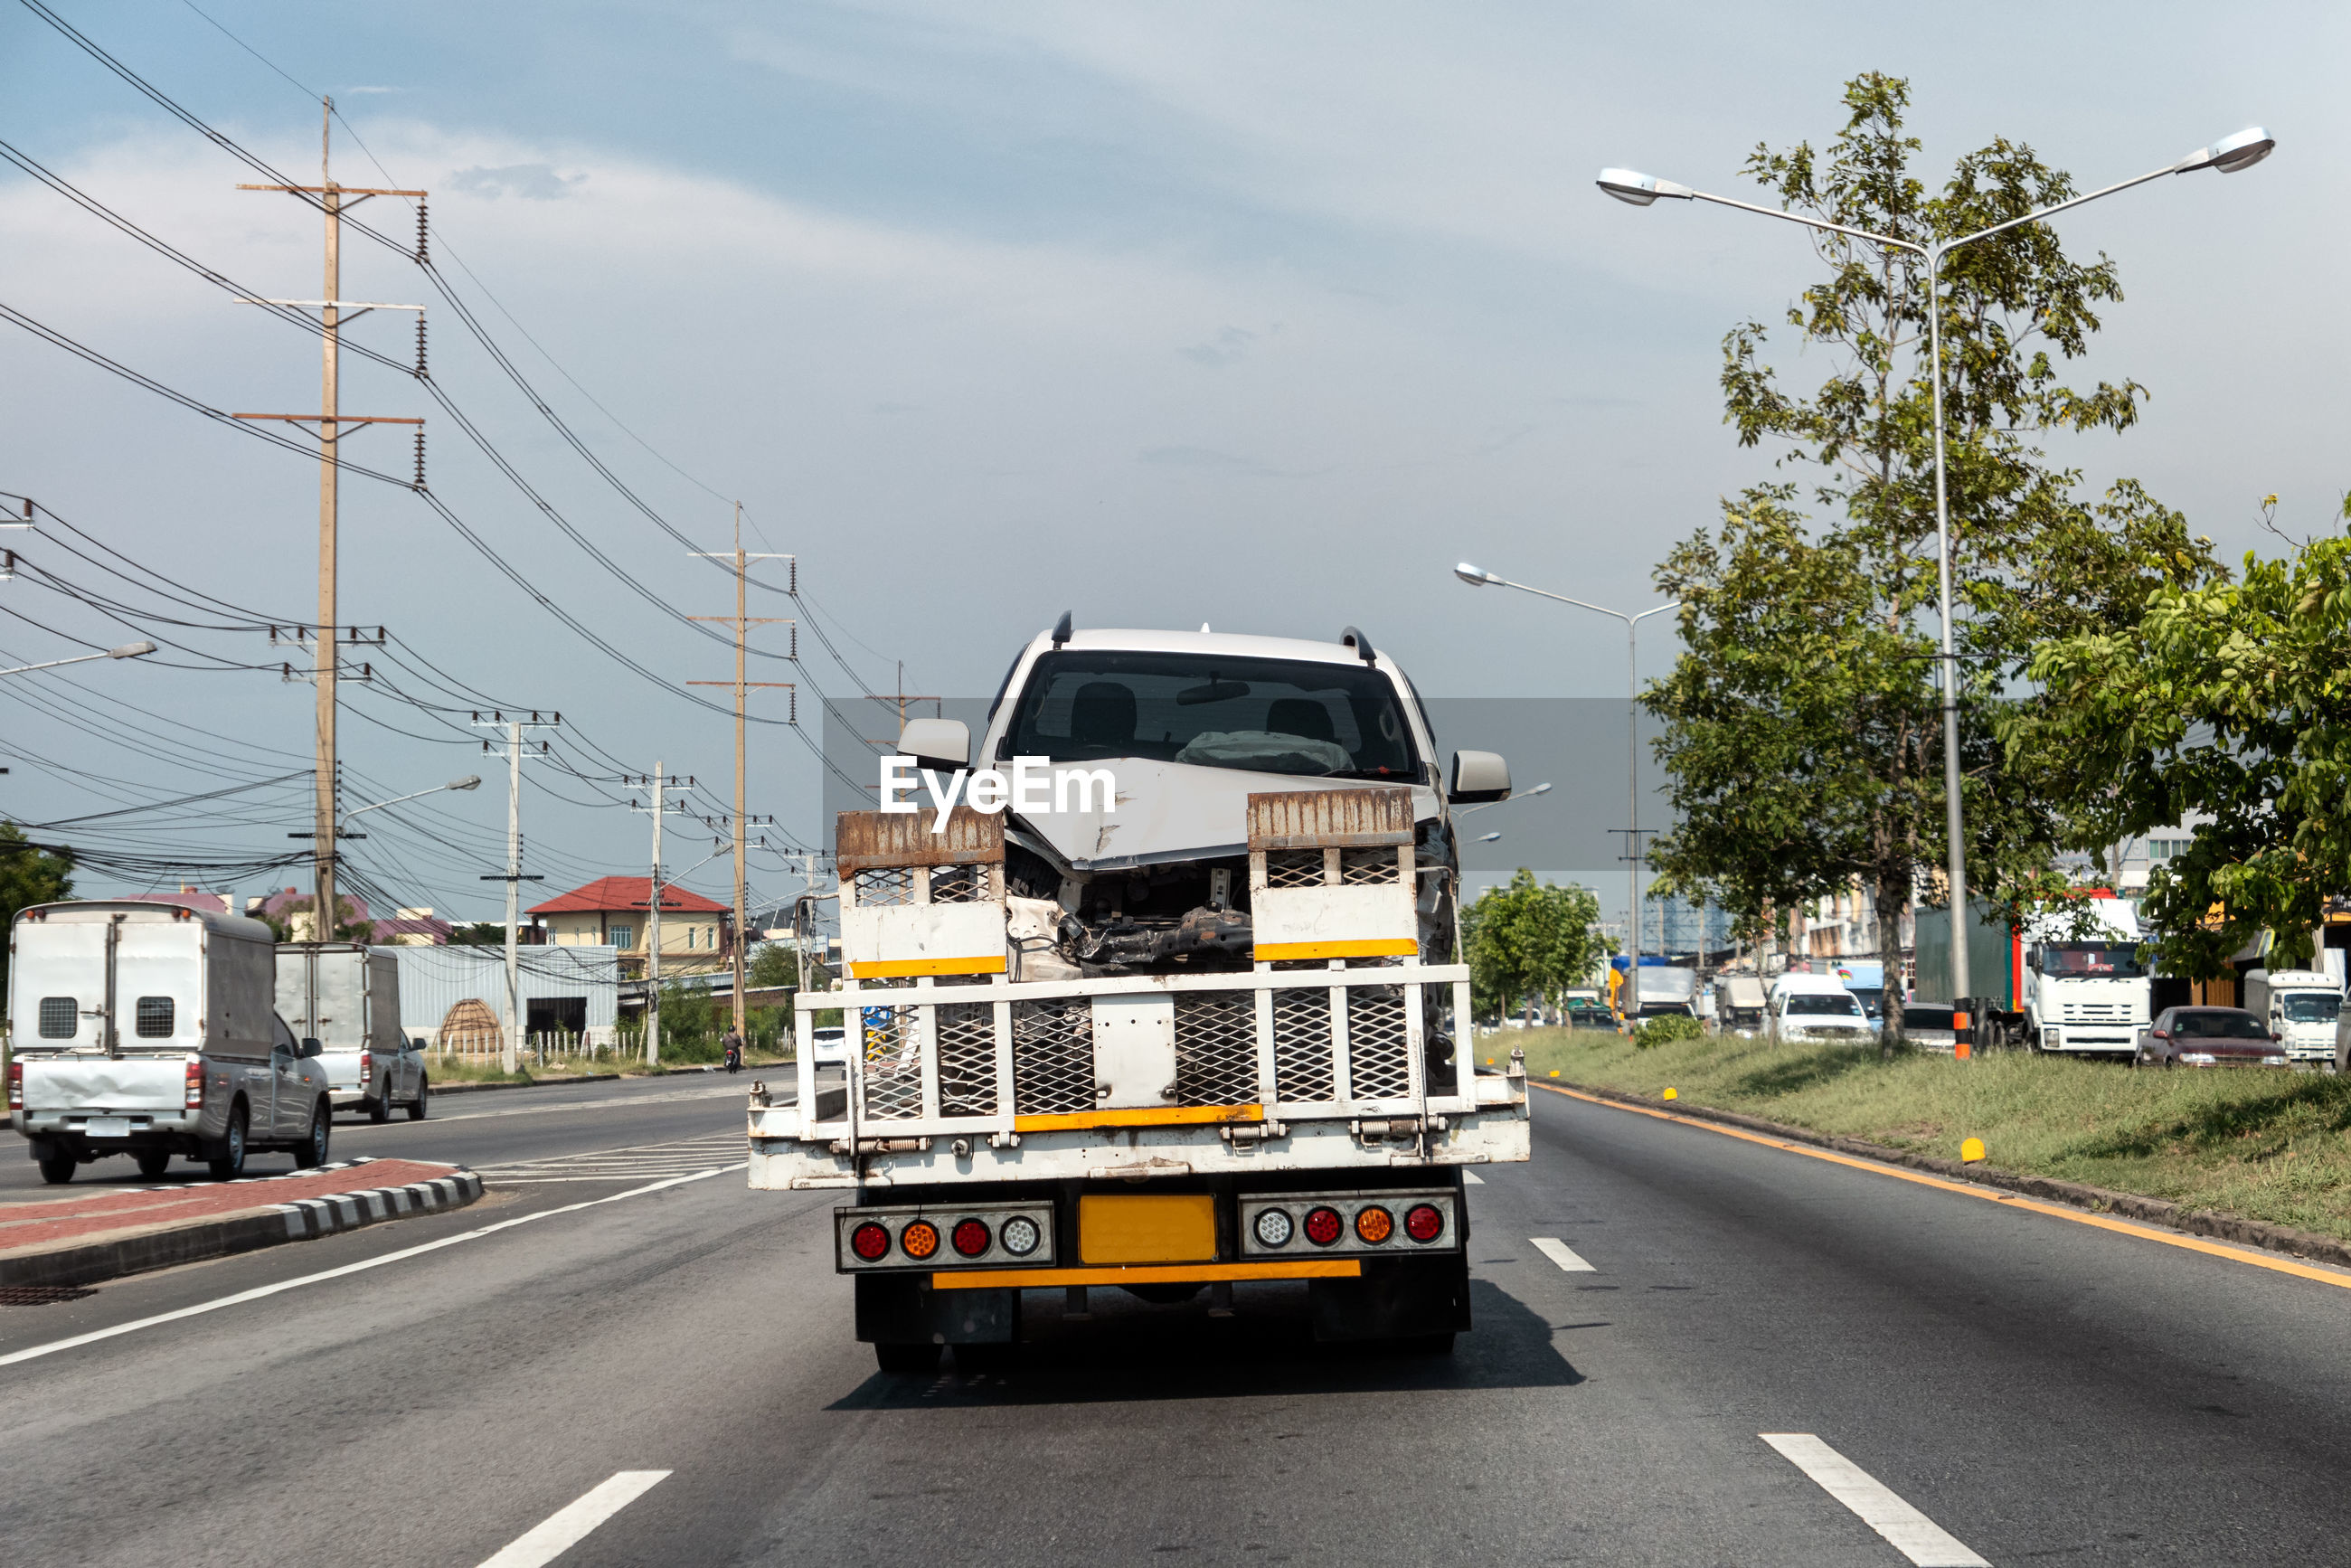 VEHICLES ON ROAD AGAINST SKY